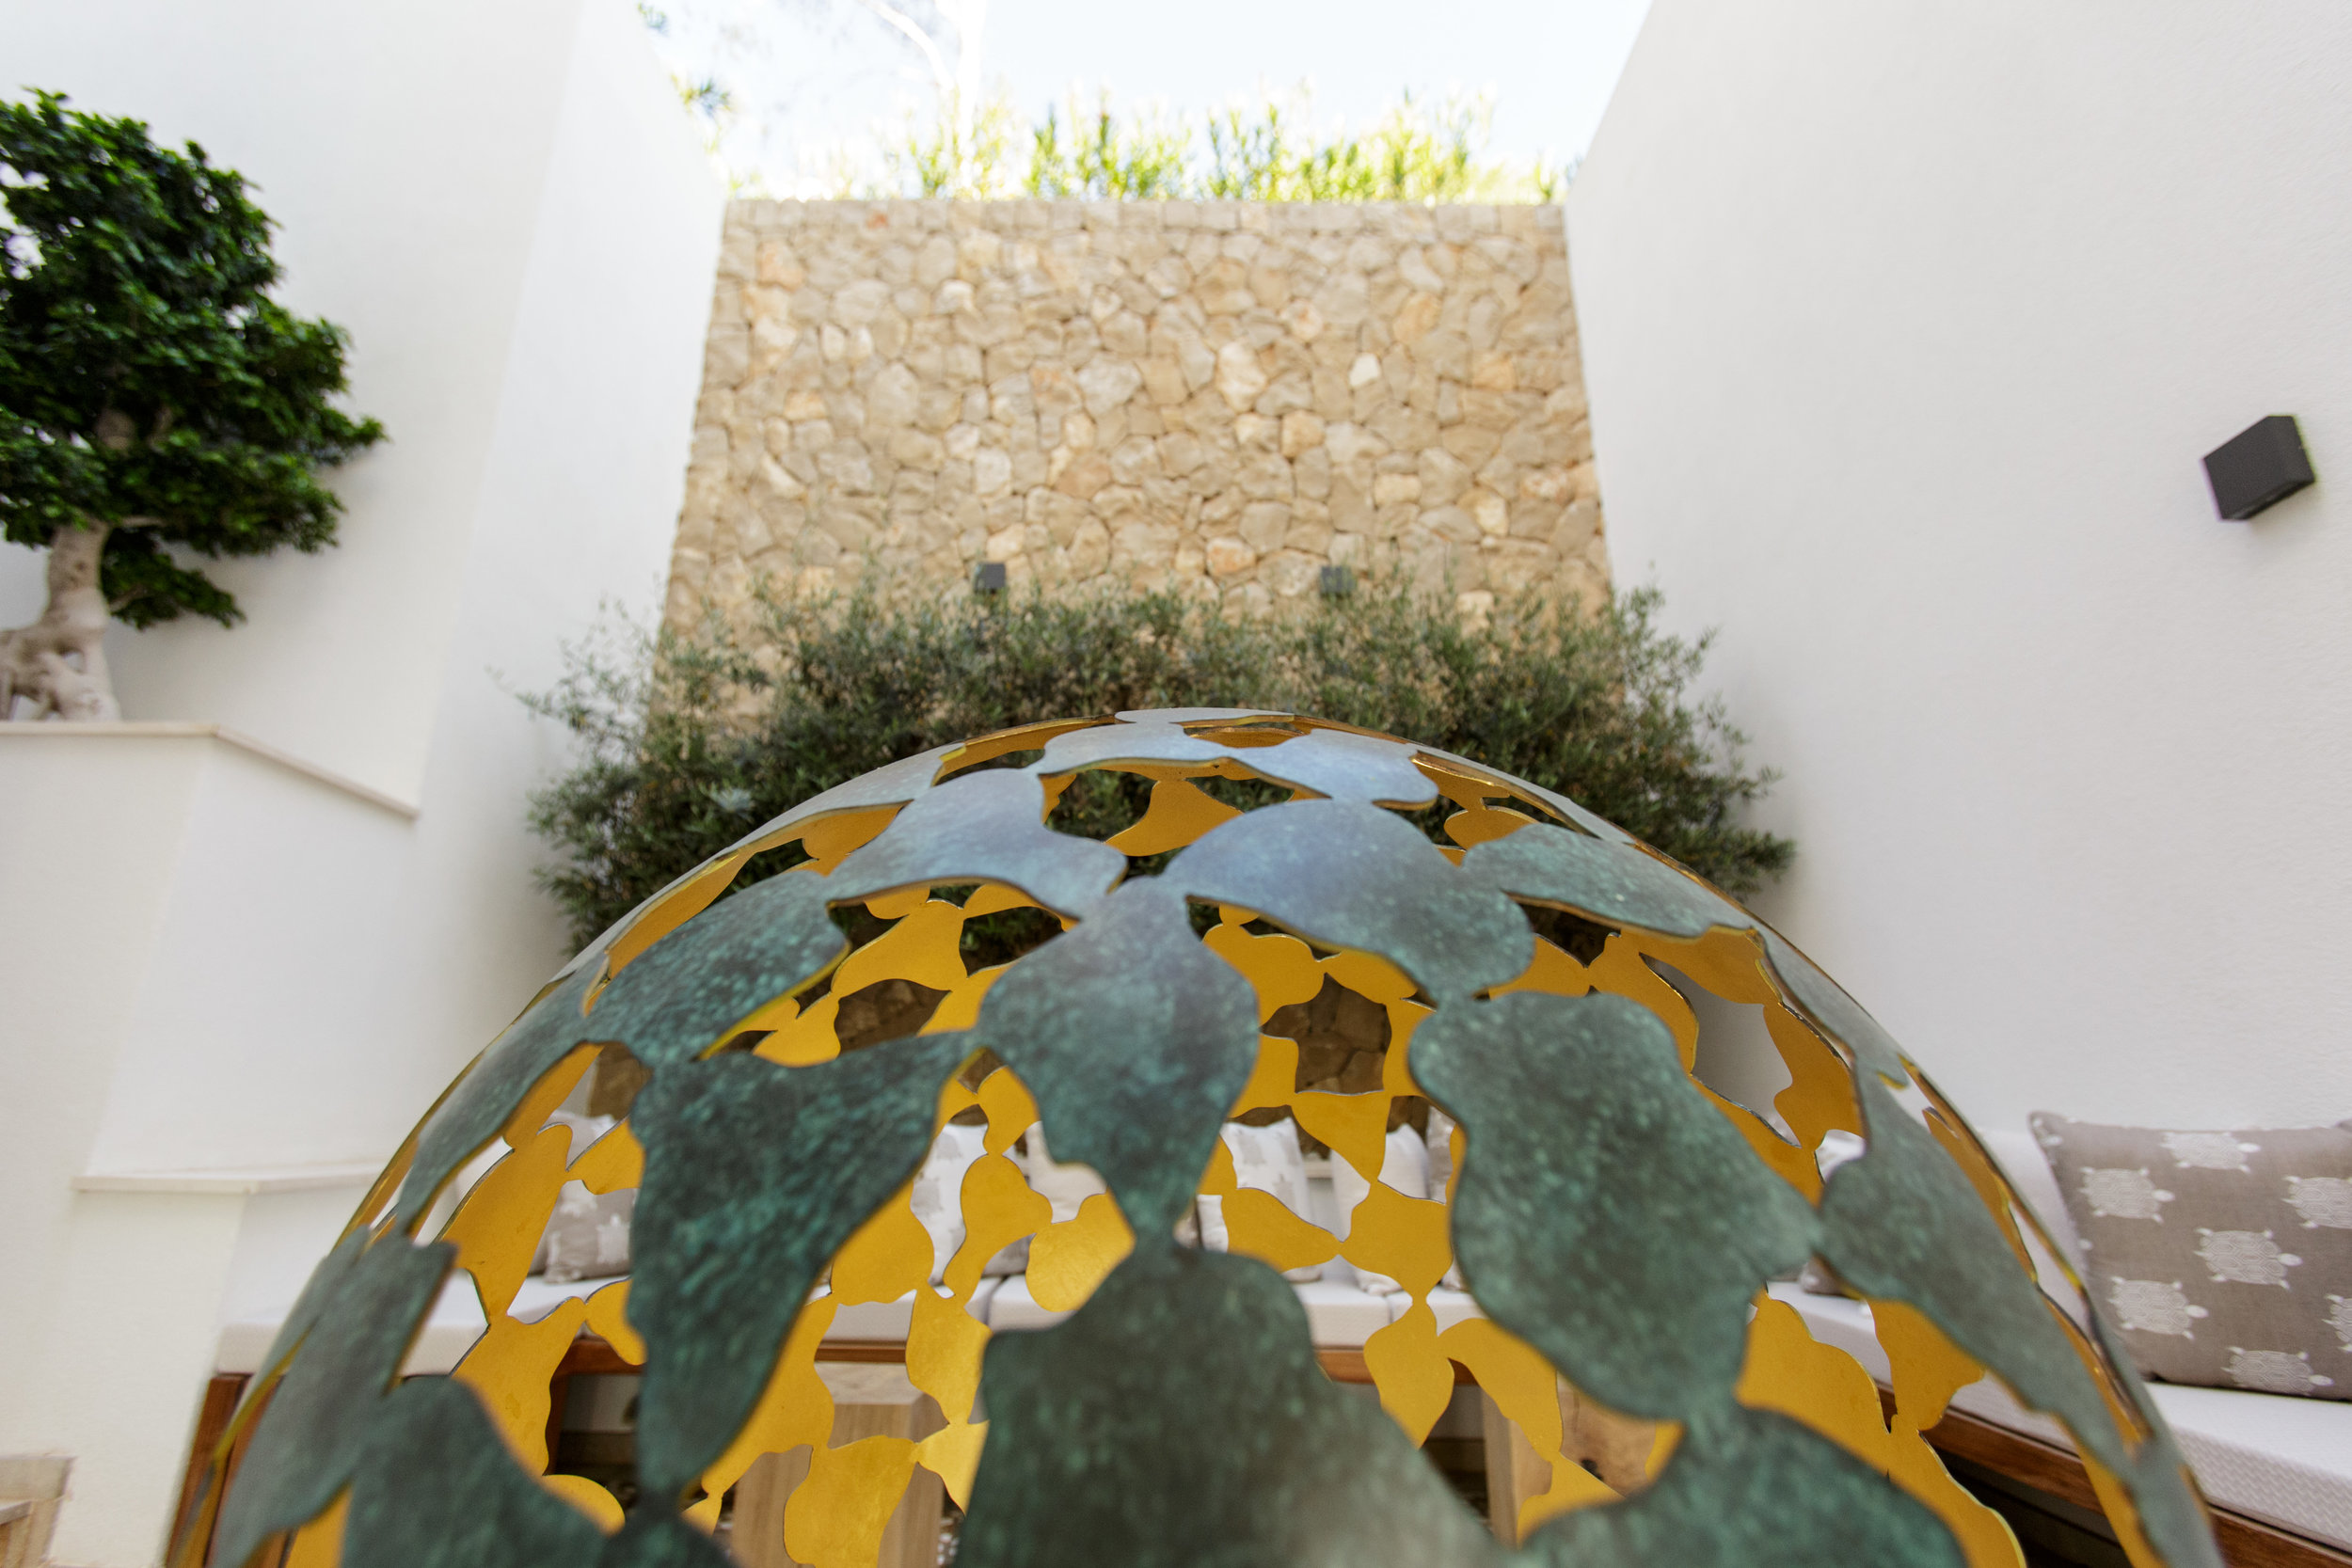 The Mantle - Commissioned from  David Harber .  Made from hundreds of bronze petals and 24 carat gold interior,linked into a cellular latticework of turquoise verdigris.